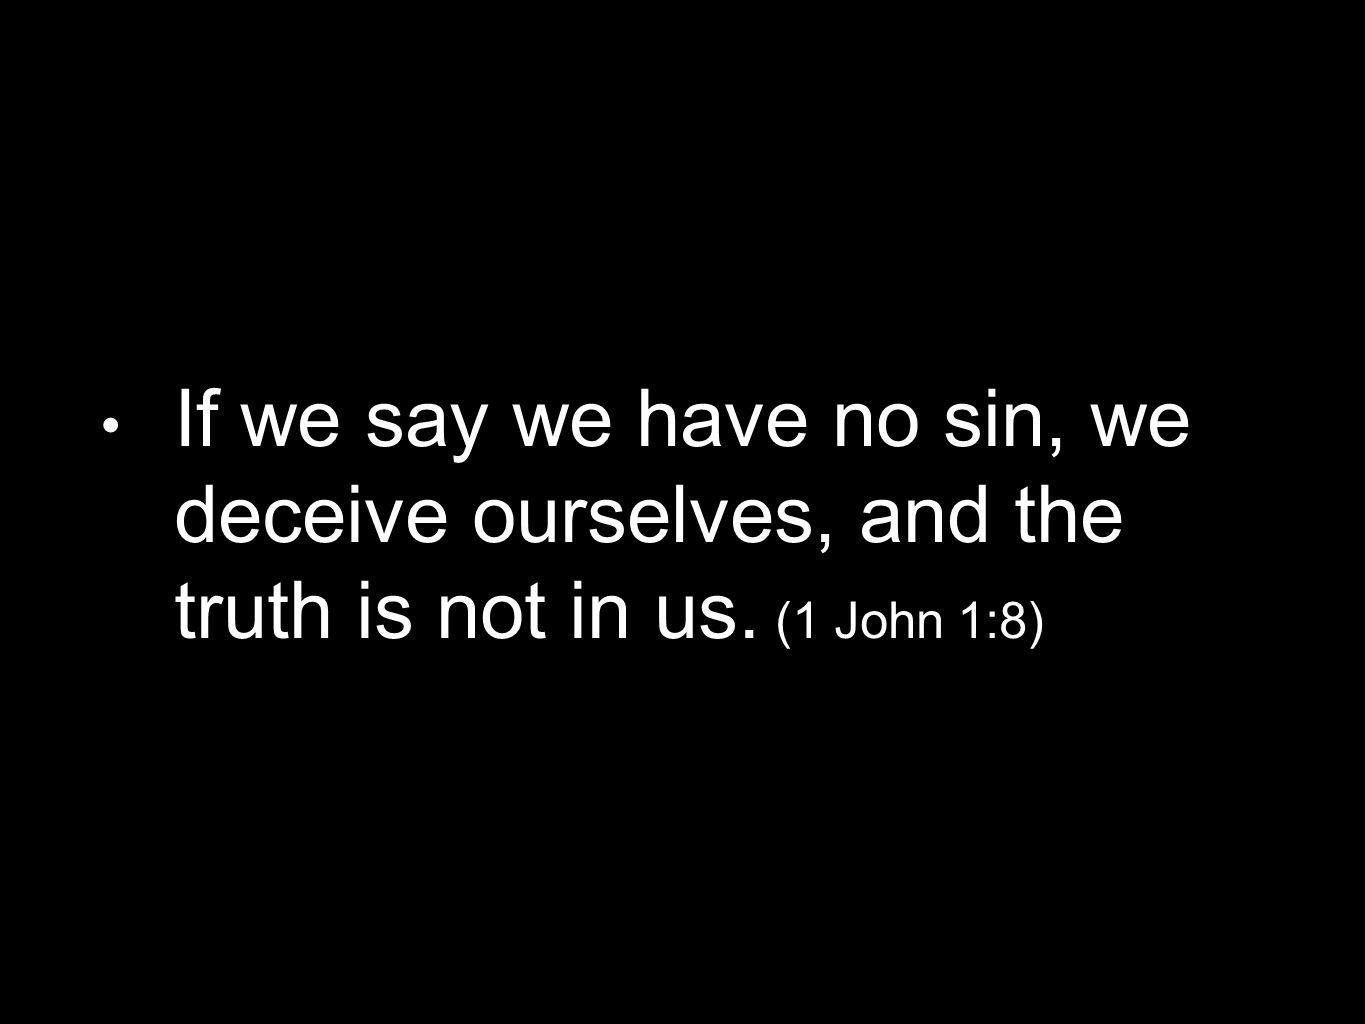 If we say we have no sin, we deceive ourselves, and the truth is not in us. (1 John 1:8)